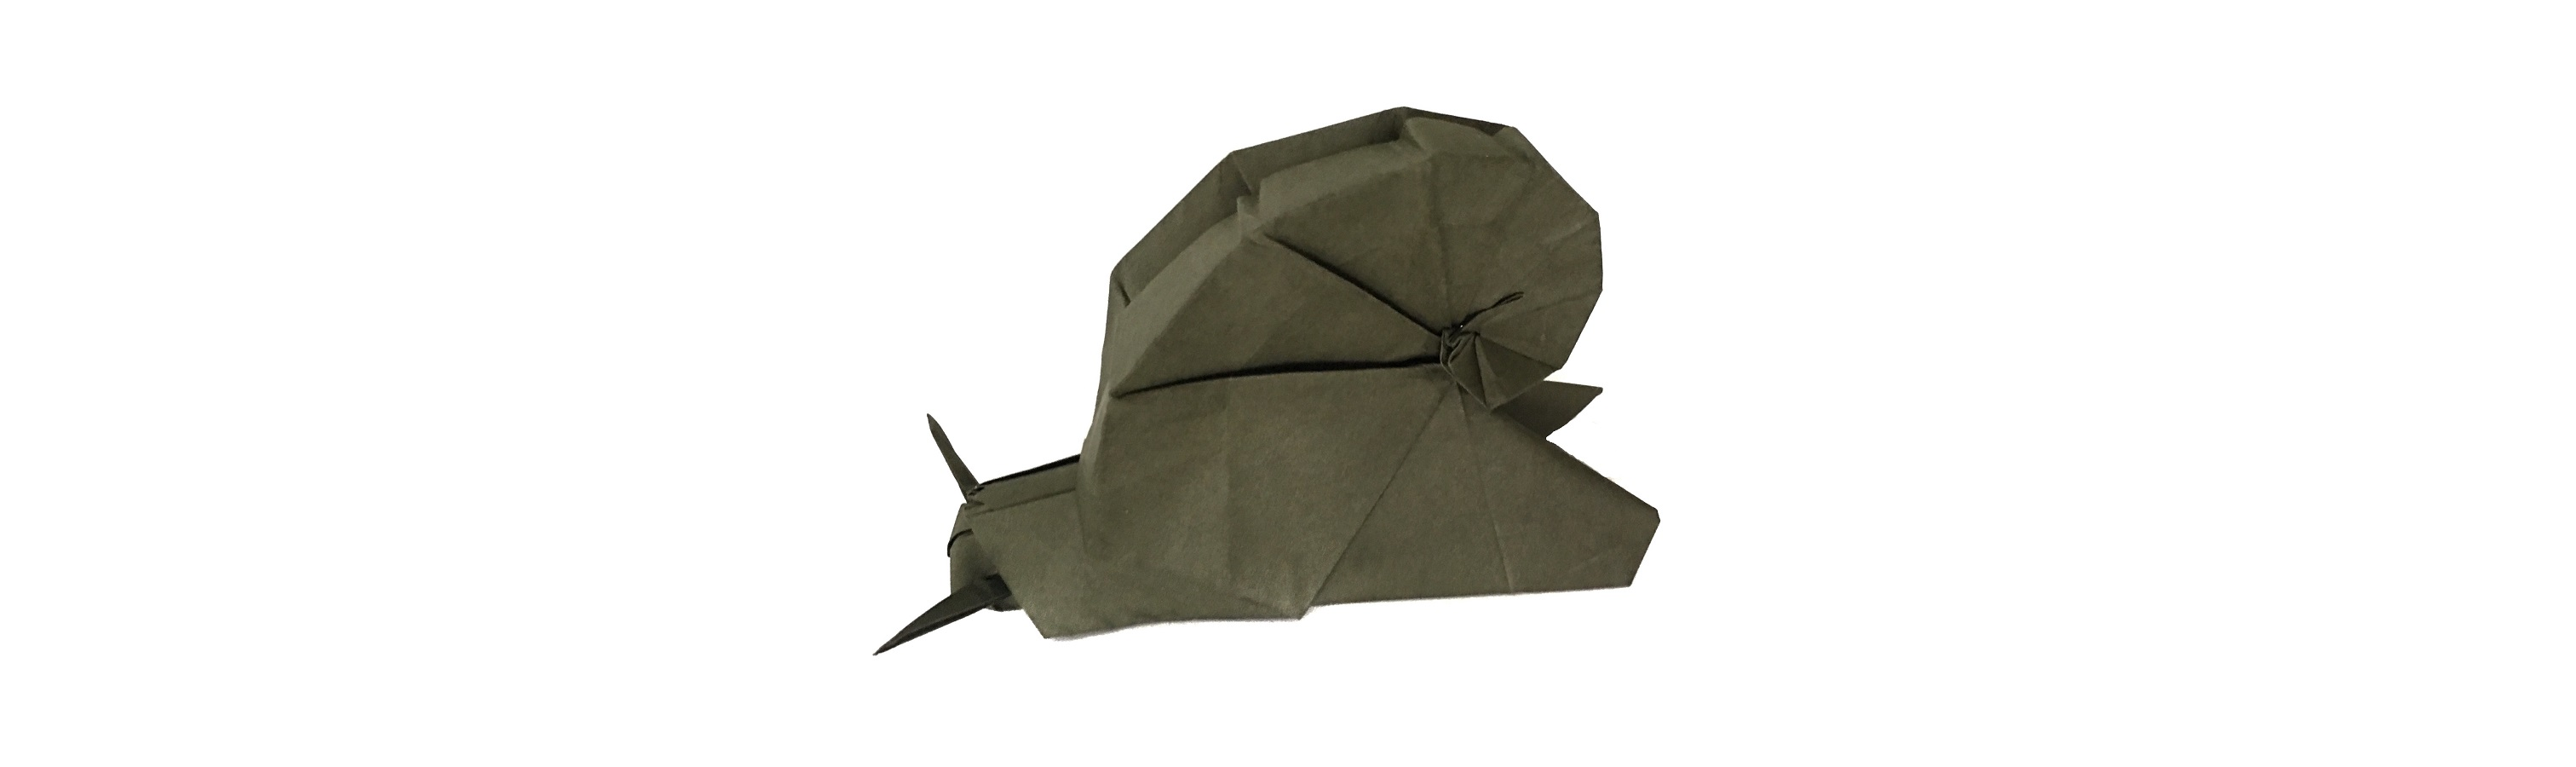 An origami snail goes to buy a car….